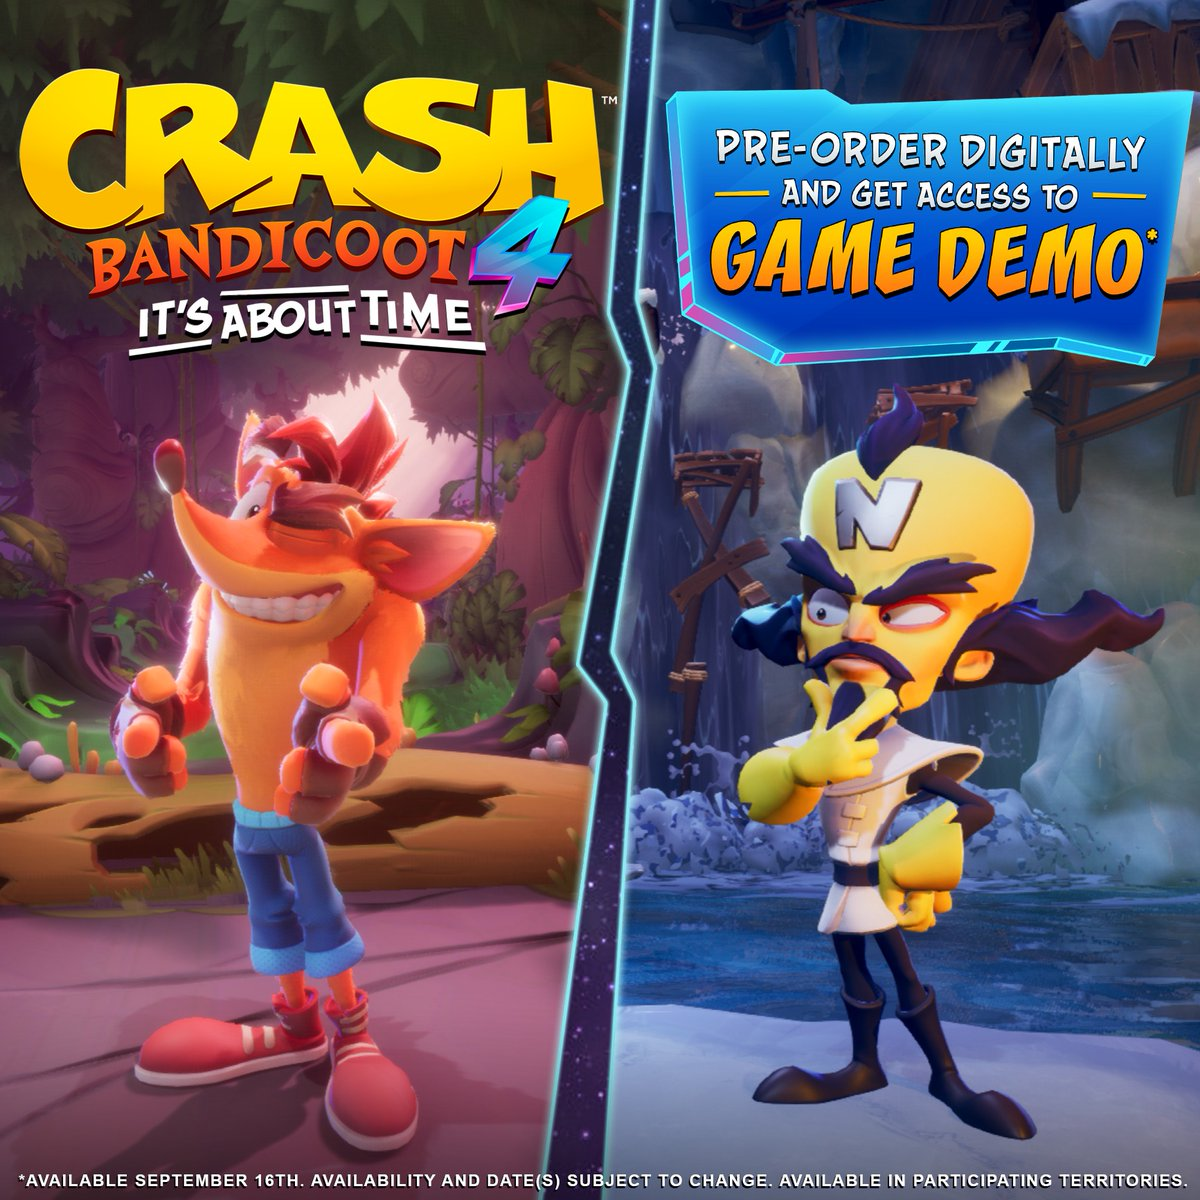 Crash Bandicoot On Twitter Can T Wait Until October 2nd Pre Order The Game Digitally And Get Access To The Crash4 Demo Available September 16 Https T Co Cmaigiewrq Https T Co I0bimmr572 Activision, crash team racing, ctr, crash bandicoot, crash and crash: crash bandicoot on twitter can t wait